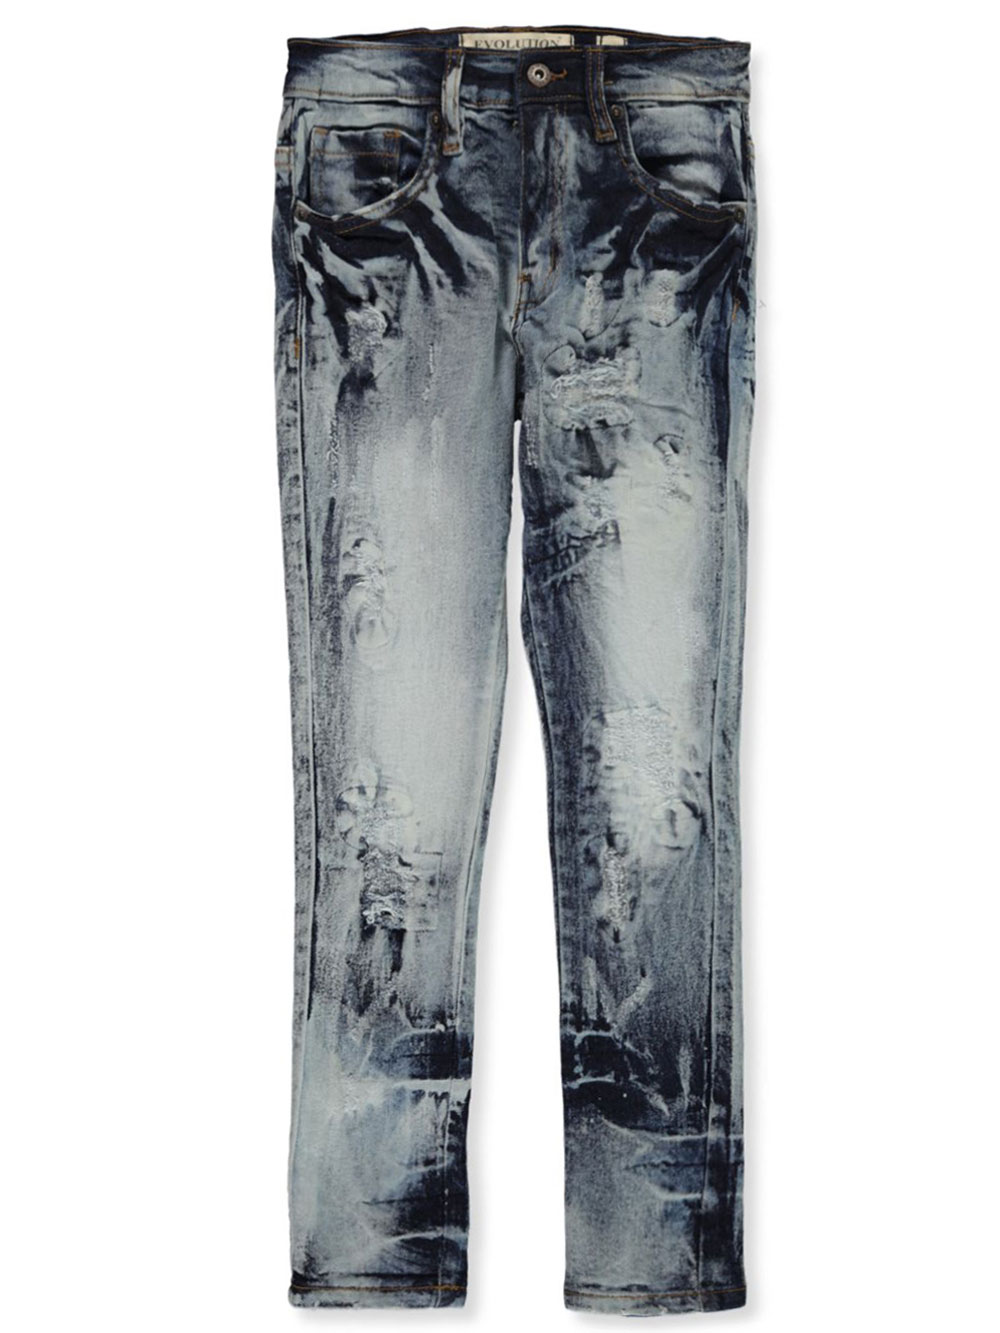 Light Tint Jeans